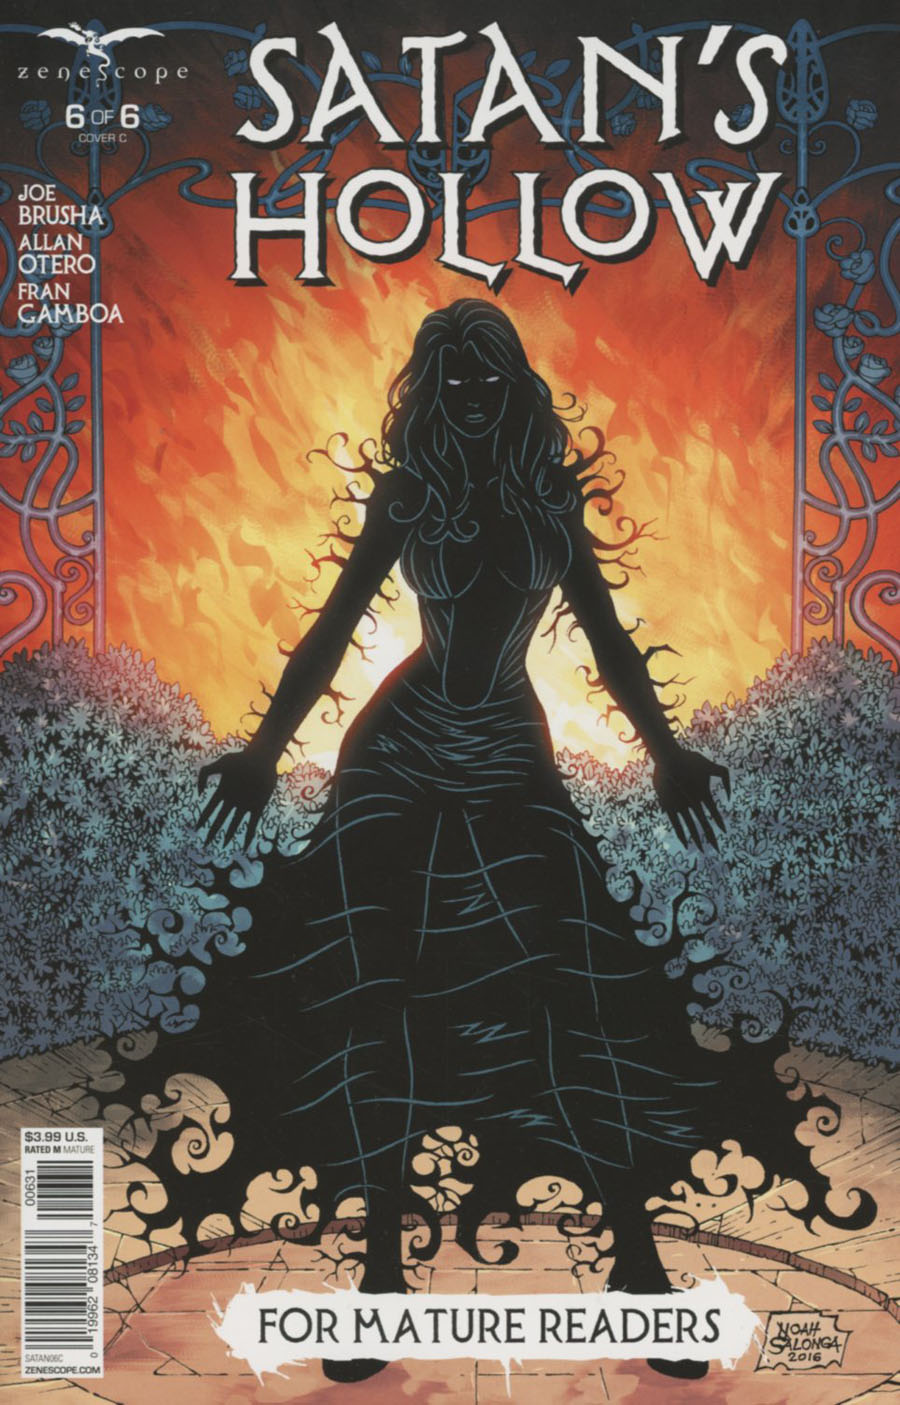 Grimm Fairy Tales Presents Satans Hollow #6 Cover C Noah Salonga